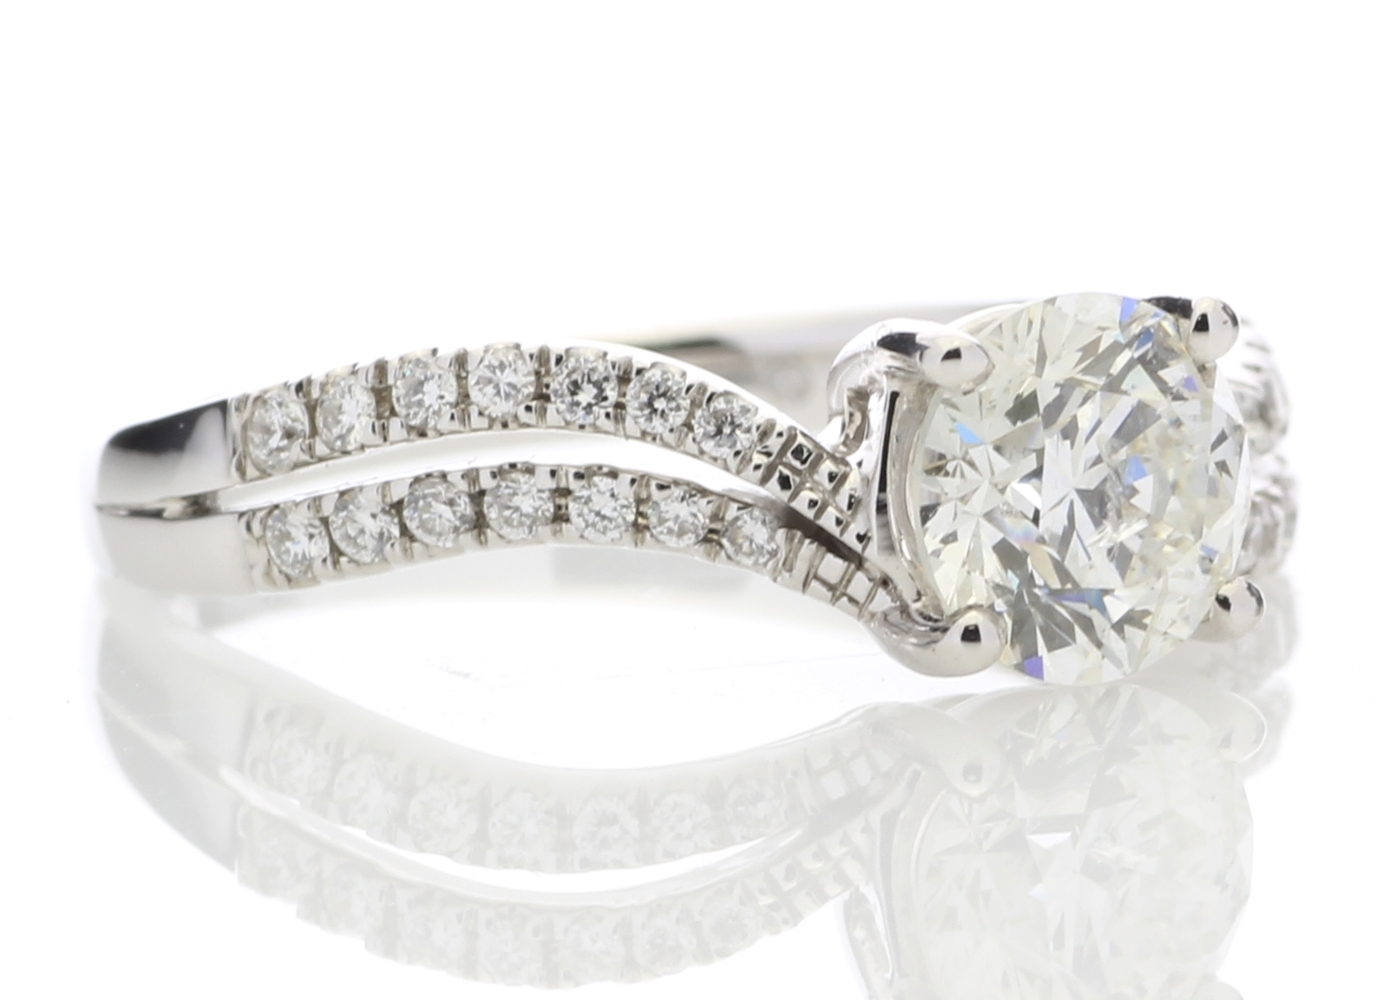 18ct White Gold Solitaire Diamond Ring With Two Rows Shoulder Set 1.31 Carats - Image 4 of 5